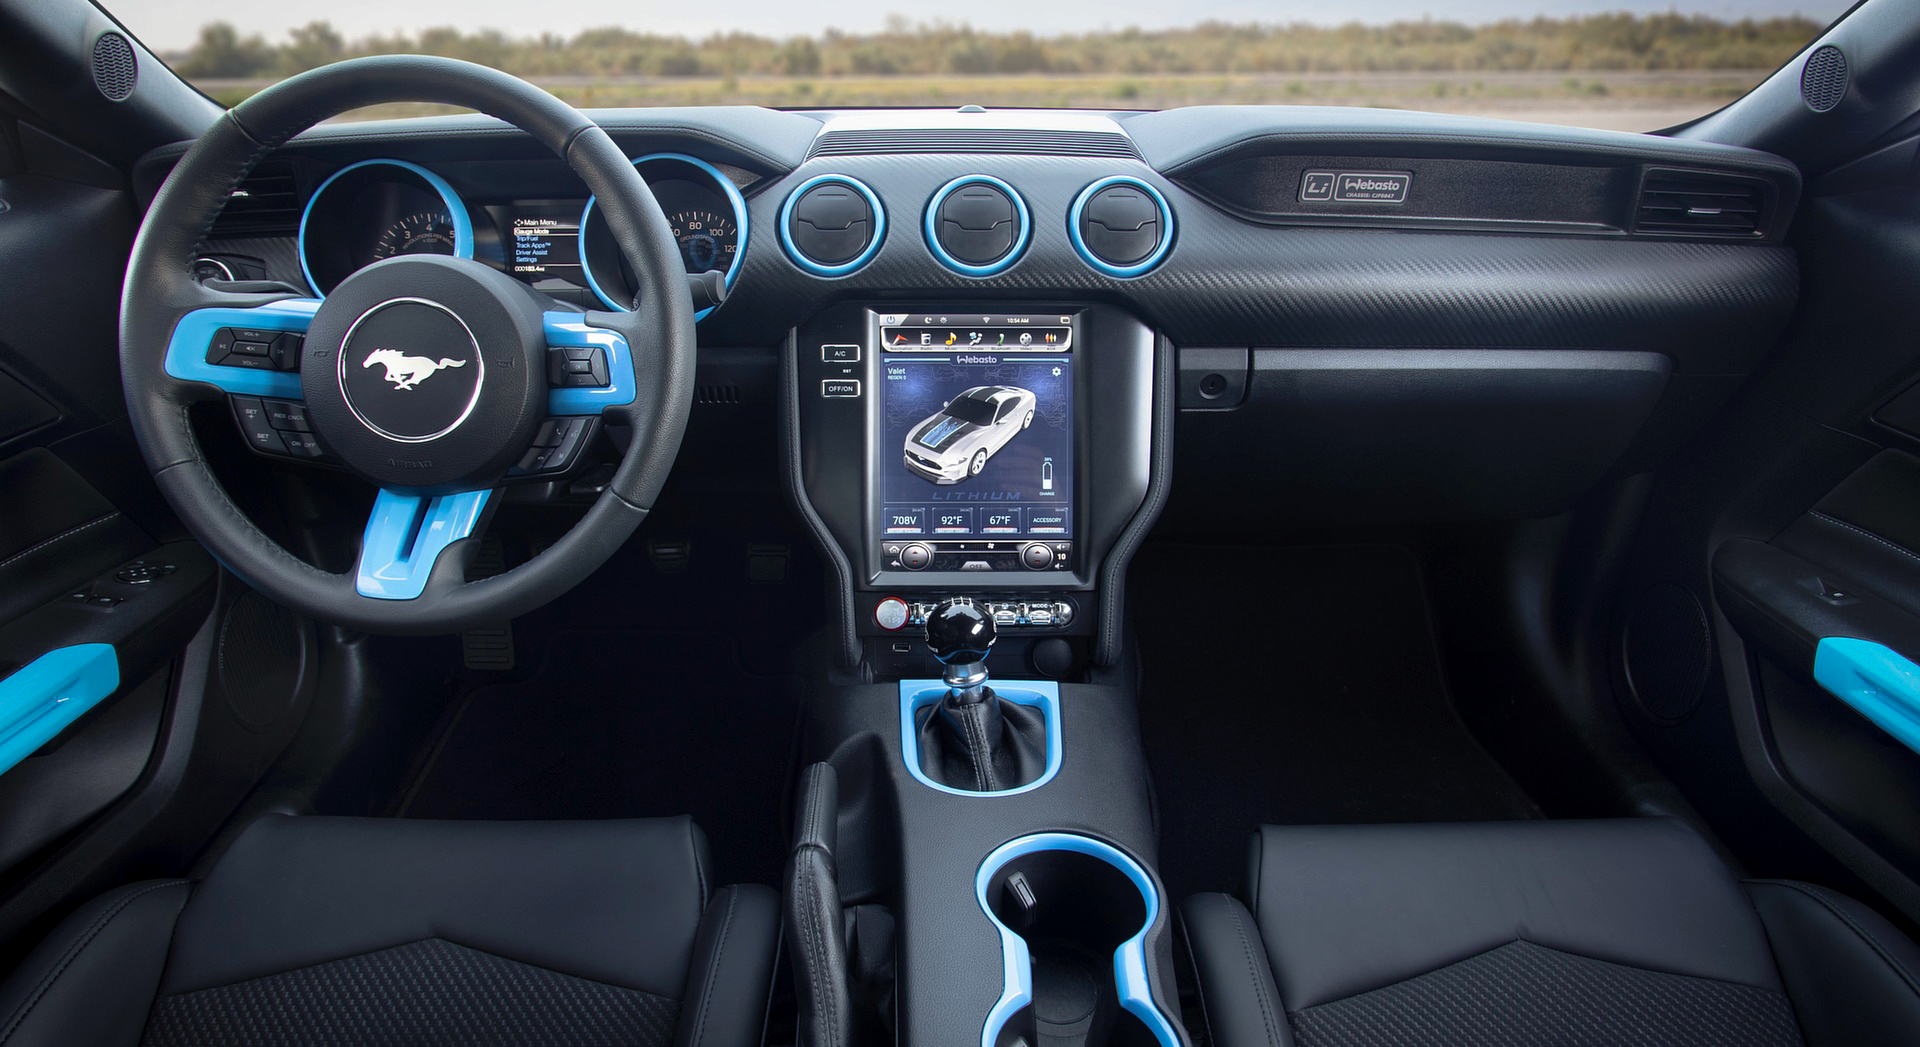 Ford Mustang Interior Feature | Good Auto Blog